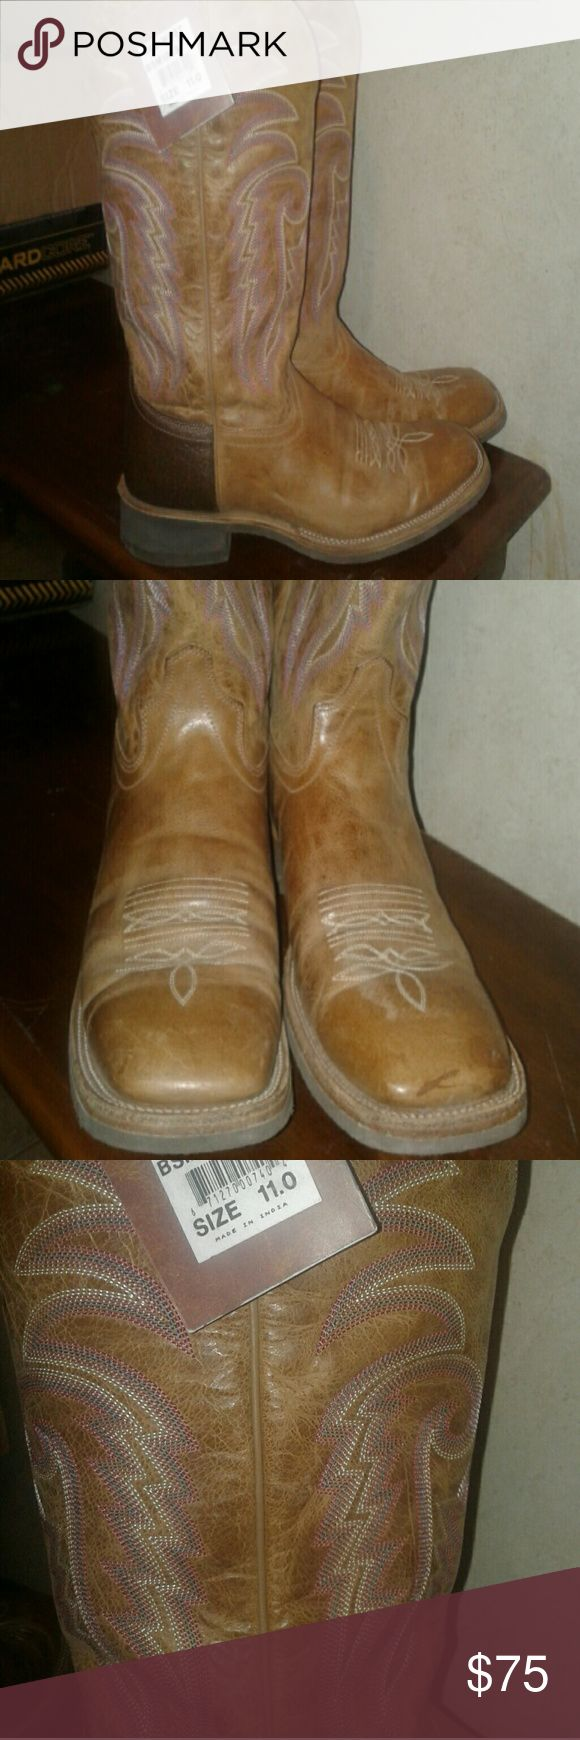 Old West brand square toe  Mens boots Old West Square Toe ,all leather uppers w/ crepe soles.  In NEW condition ,only worn maybe  3 times. Tag still attatched.   Own multiple pairs making room and doing a closet  cleanoyt.  Priced fair only accepting  offers that are reasonable,  Please  appreciate the leather work on these Old West cowboy boots ,  very good quality and fairly priced 😊 OLD WEST Shoes Boots